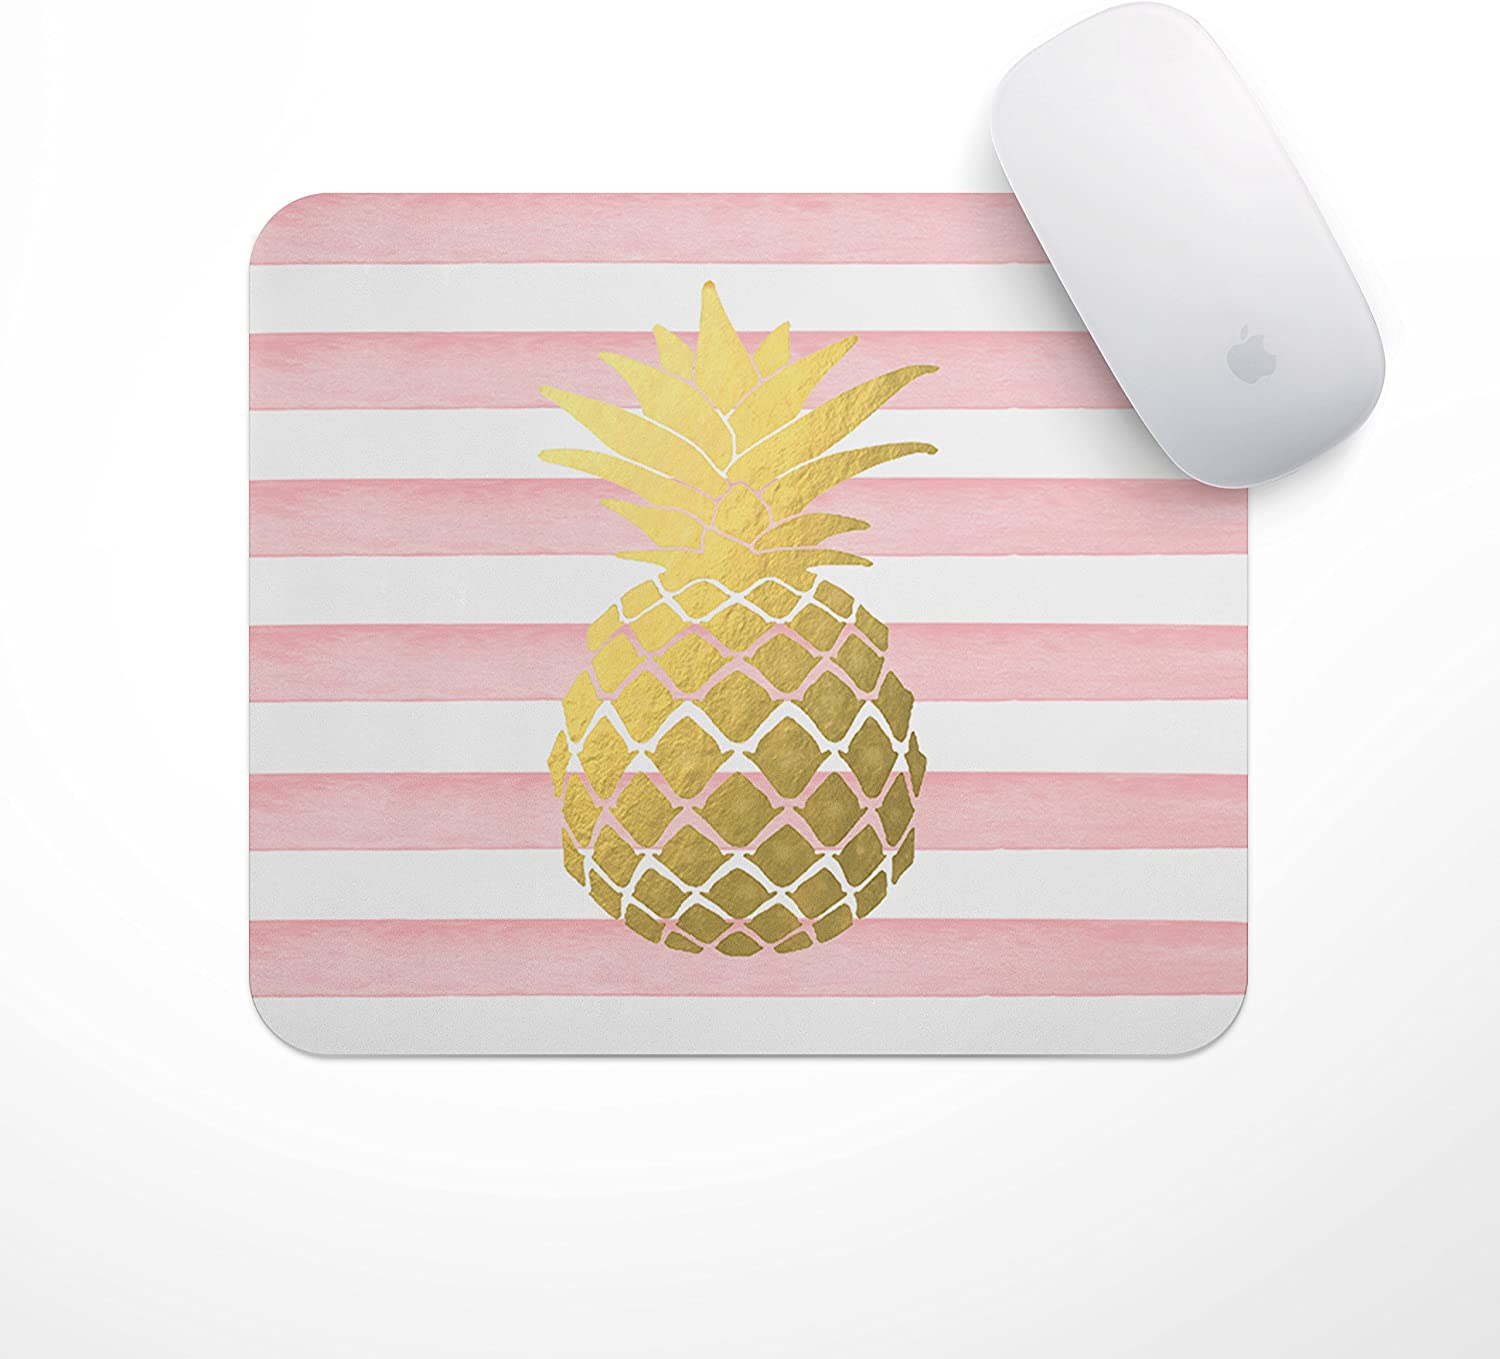 Pineapple Mousepad | Light Pink Stripe Gold Pineapple - Carnation Gold Pineapple Mouse Pad, Glitz Mouse Pad Pink and White Stripes Watercolor Mouse Pad Personalized Mouse Pad